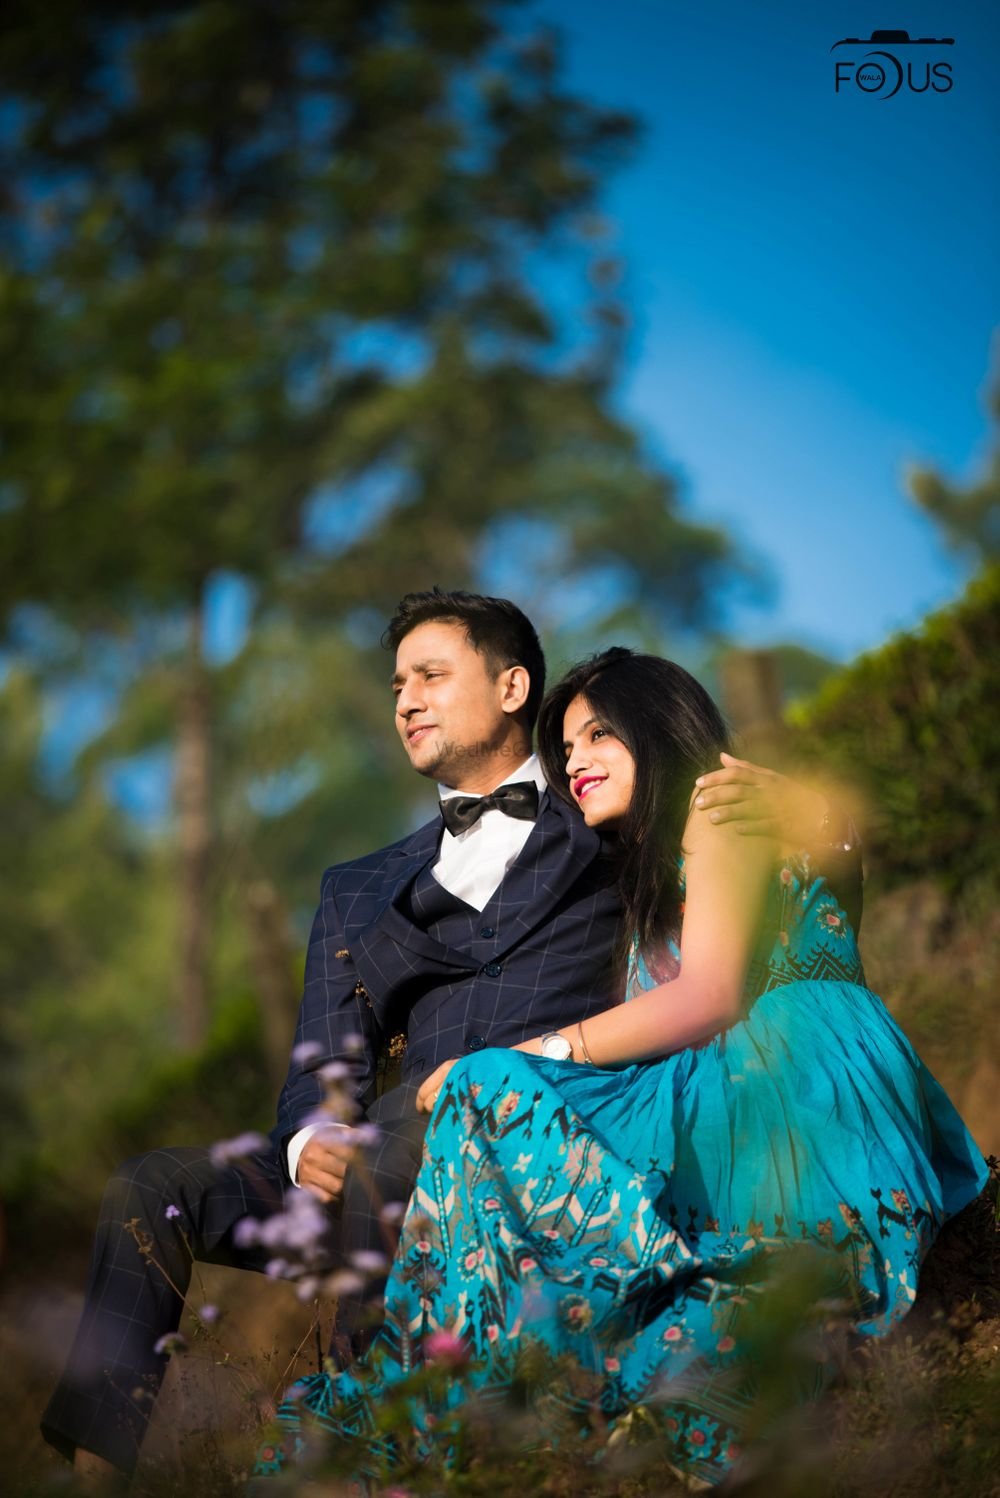 Photo From Sapna + Piyush - By Focus Wala